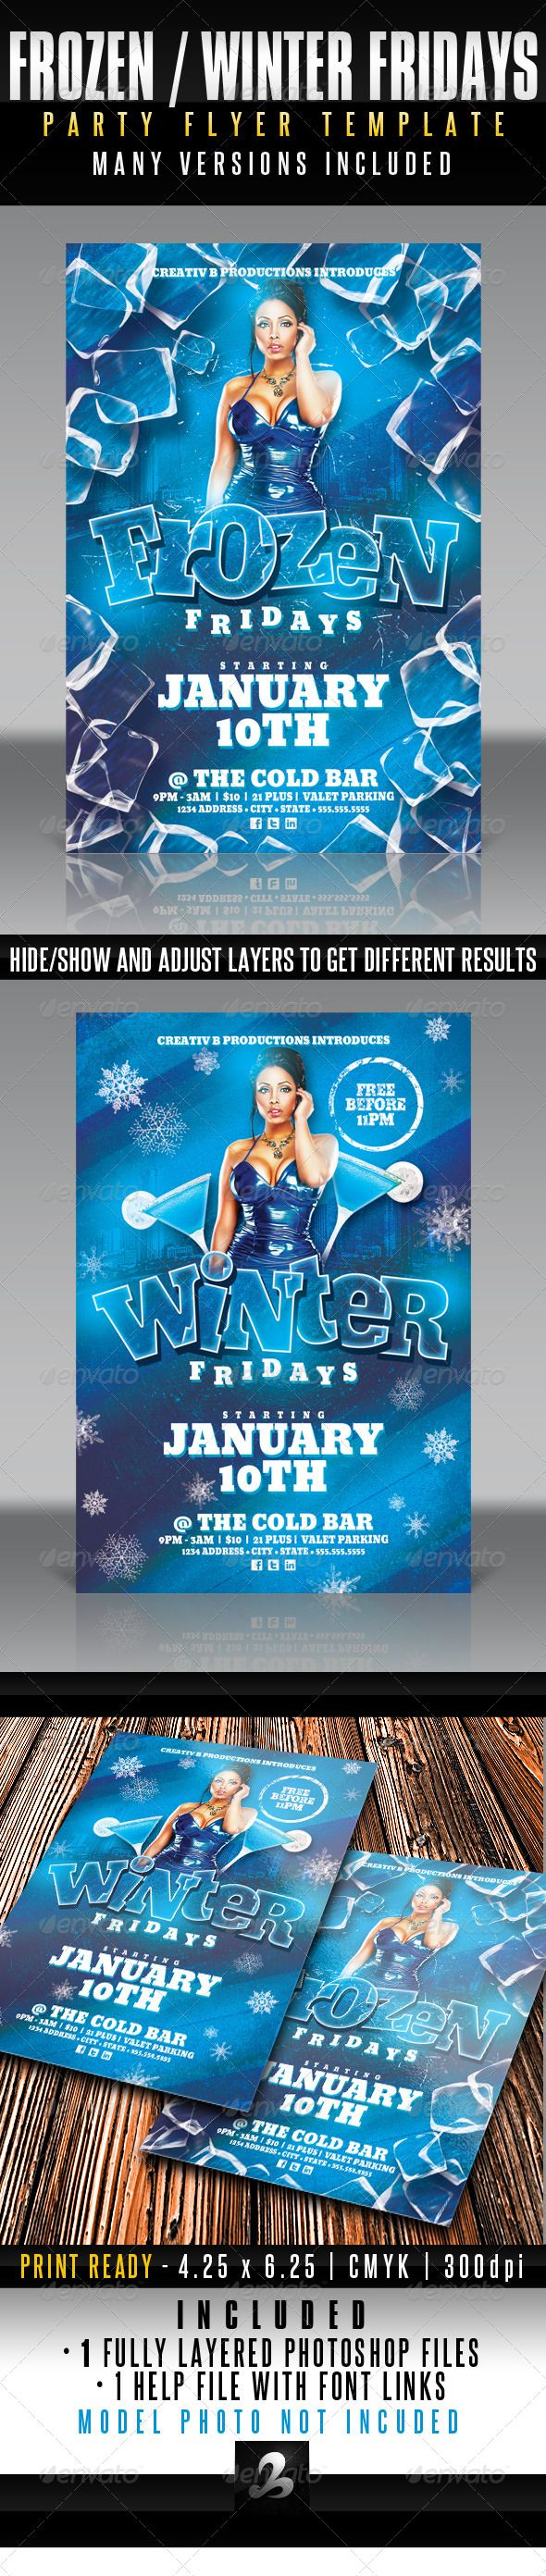 Frozen  Winter Fridays Party Flyer Template  Party Flyer Flyer